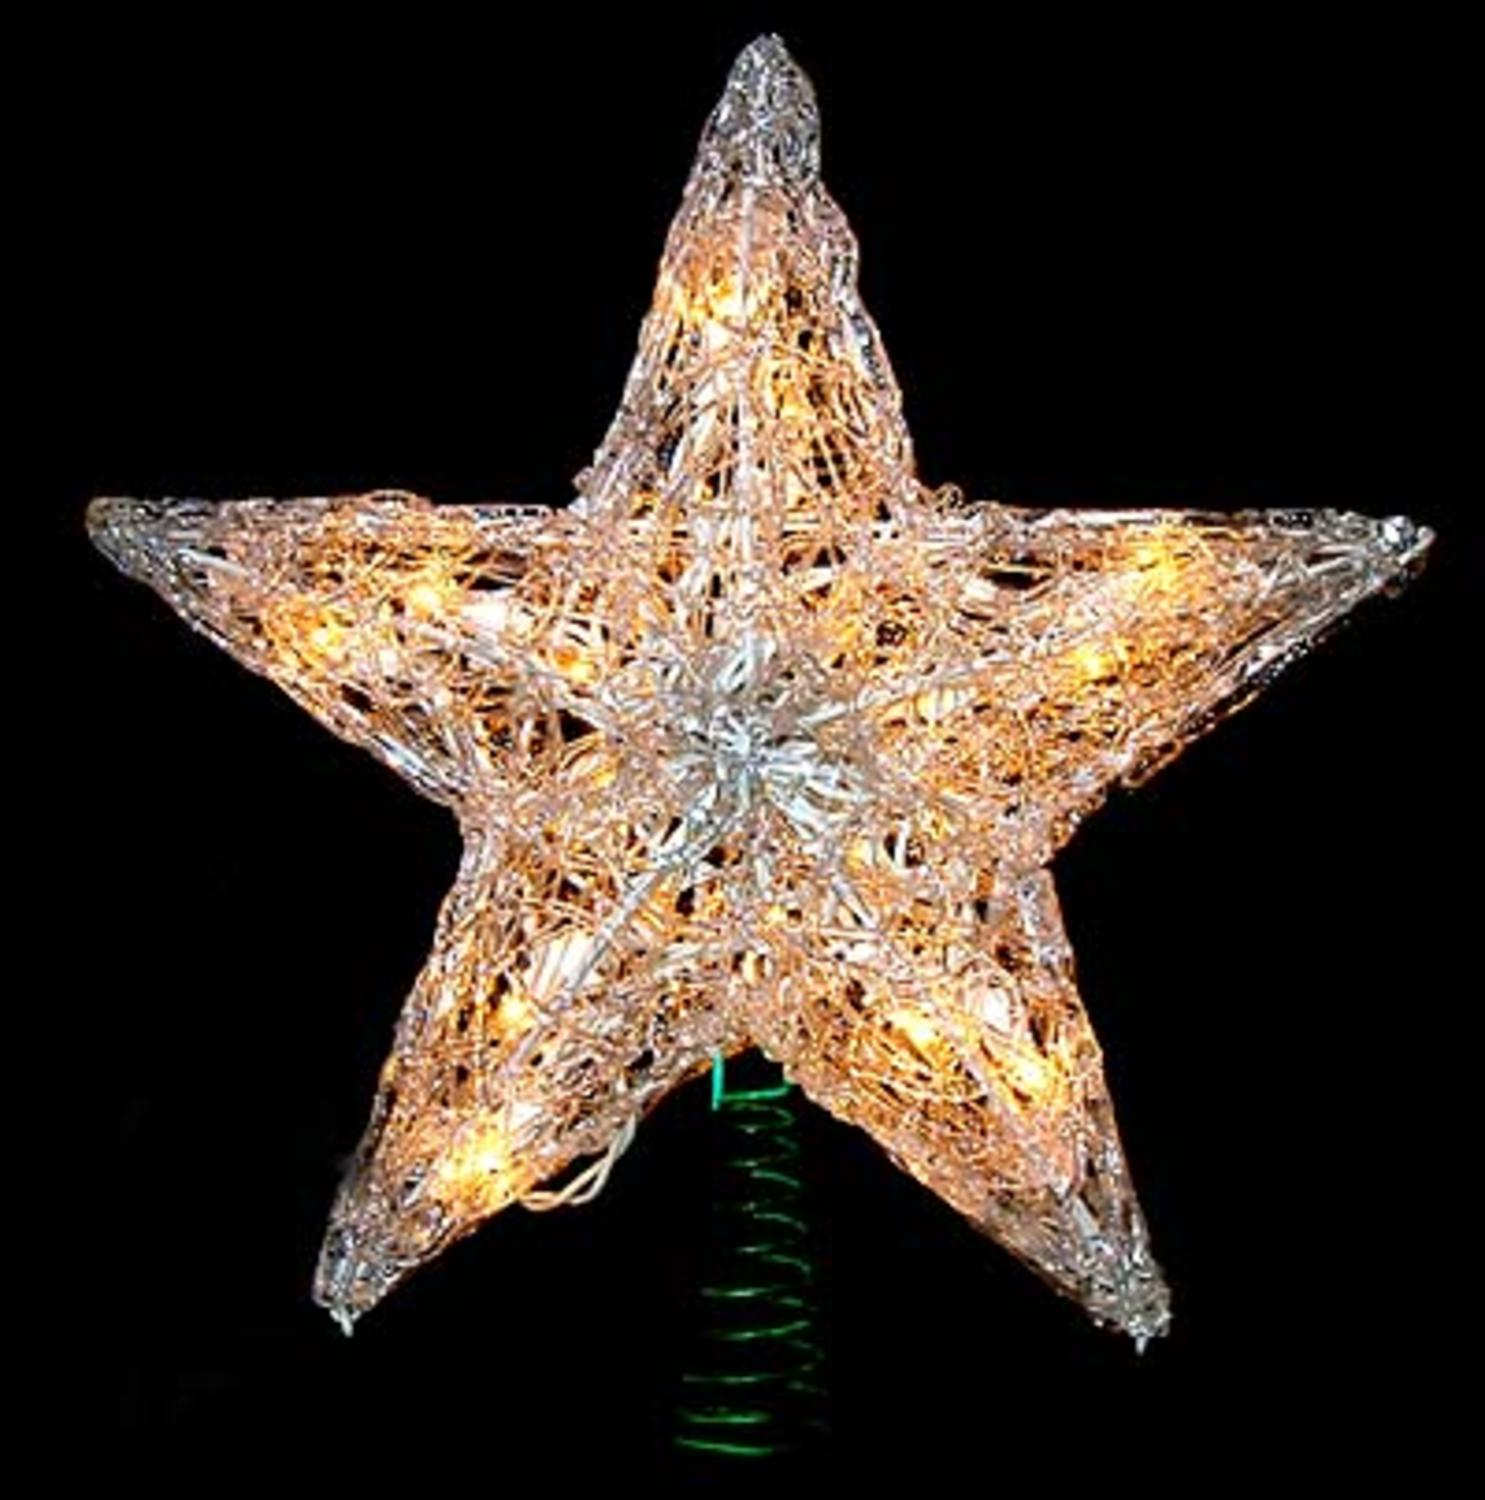 Star Of Bethlehem Outdoor Light Large outdoor star tree topper outdoor designs large outdoor star tree topper designs workwithnaturefo